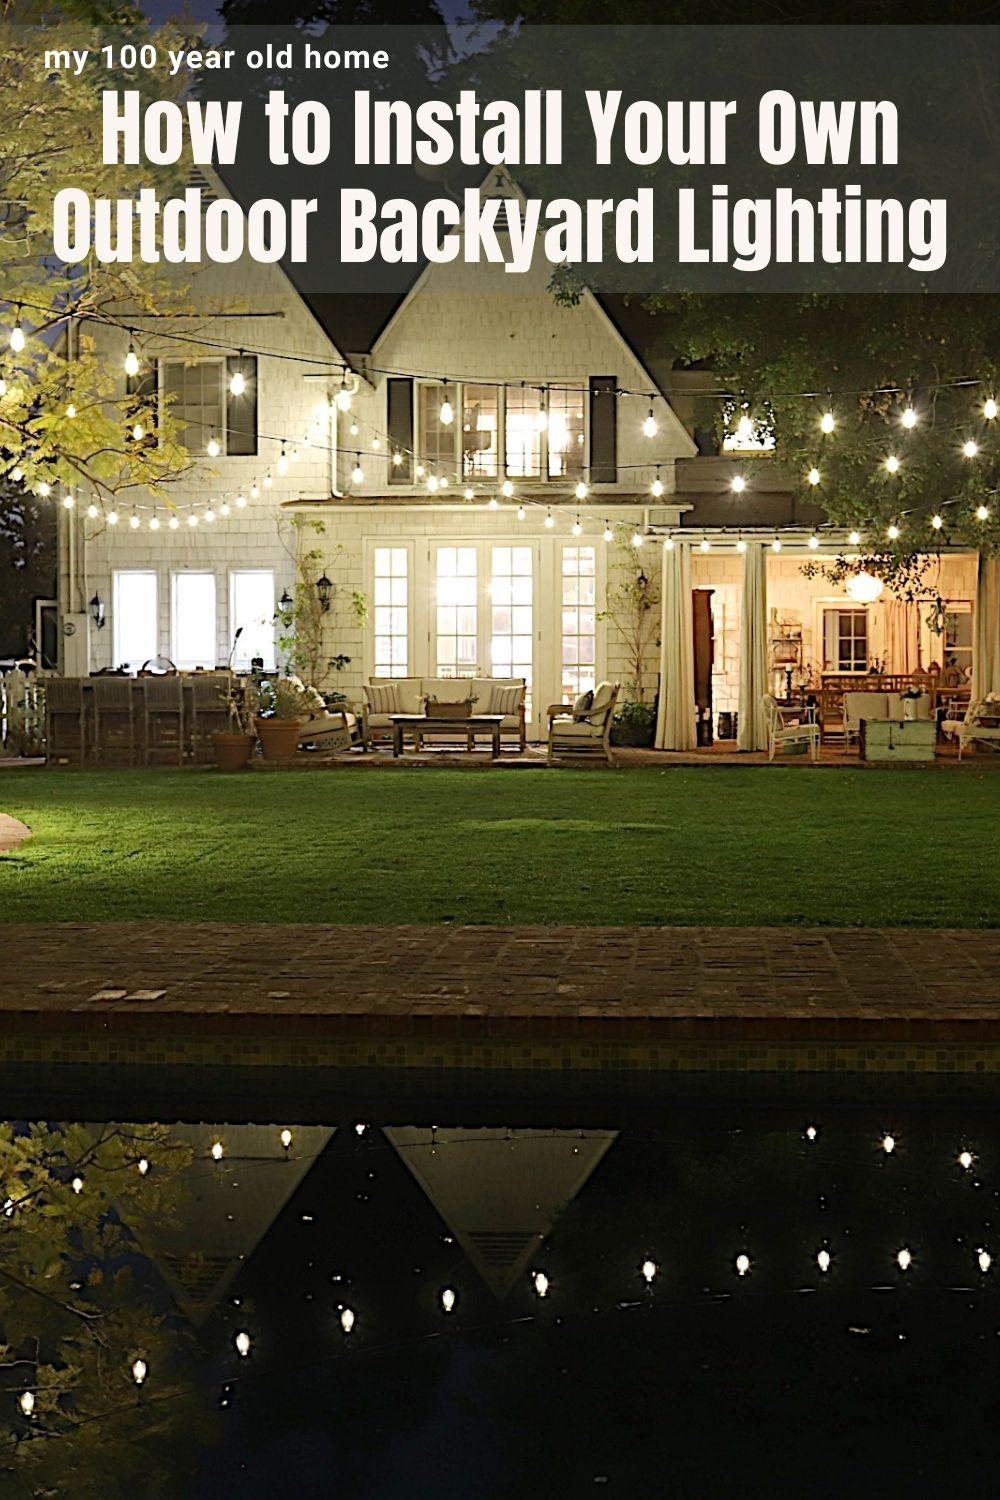 I just did something that made a huge impact in our yard. I discovered amazing outdoor backyard lighting that I can install myself.